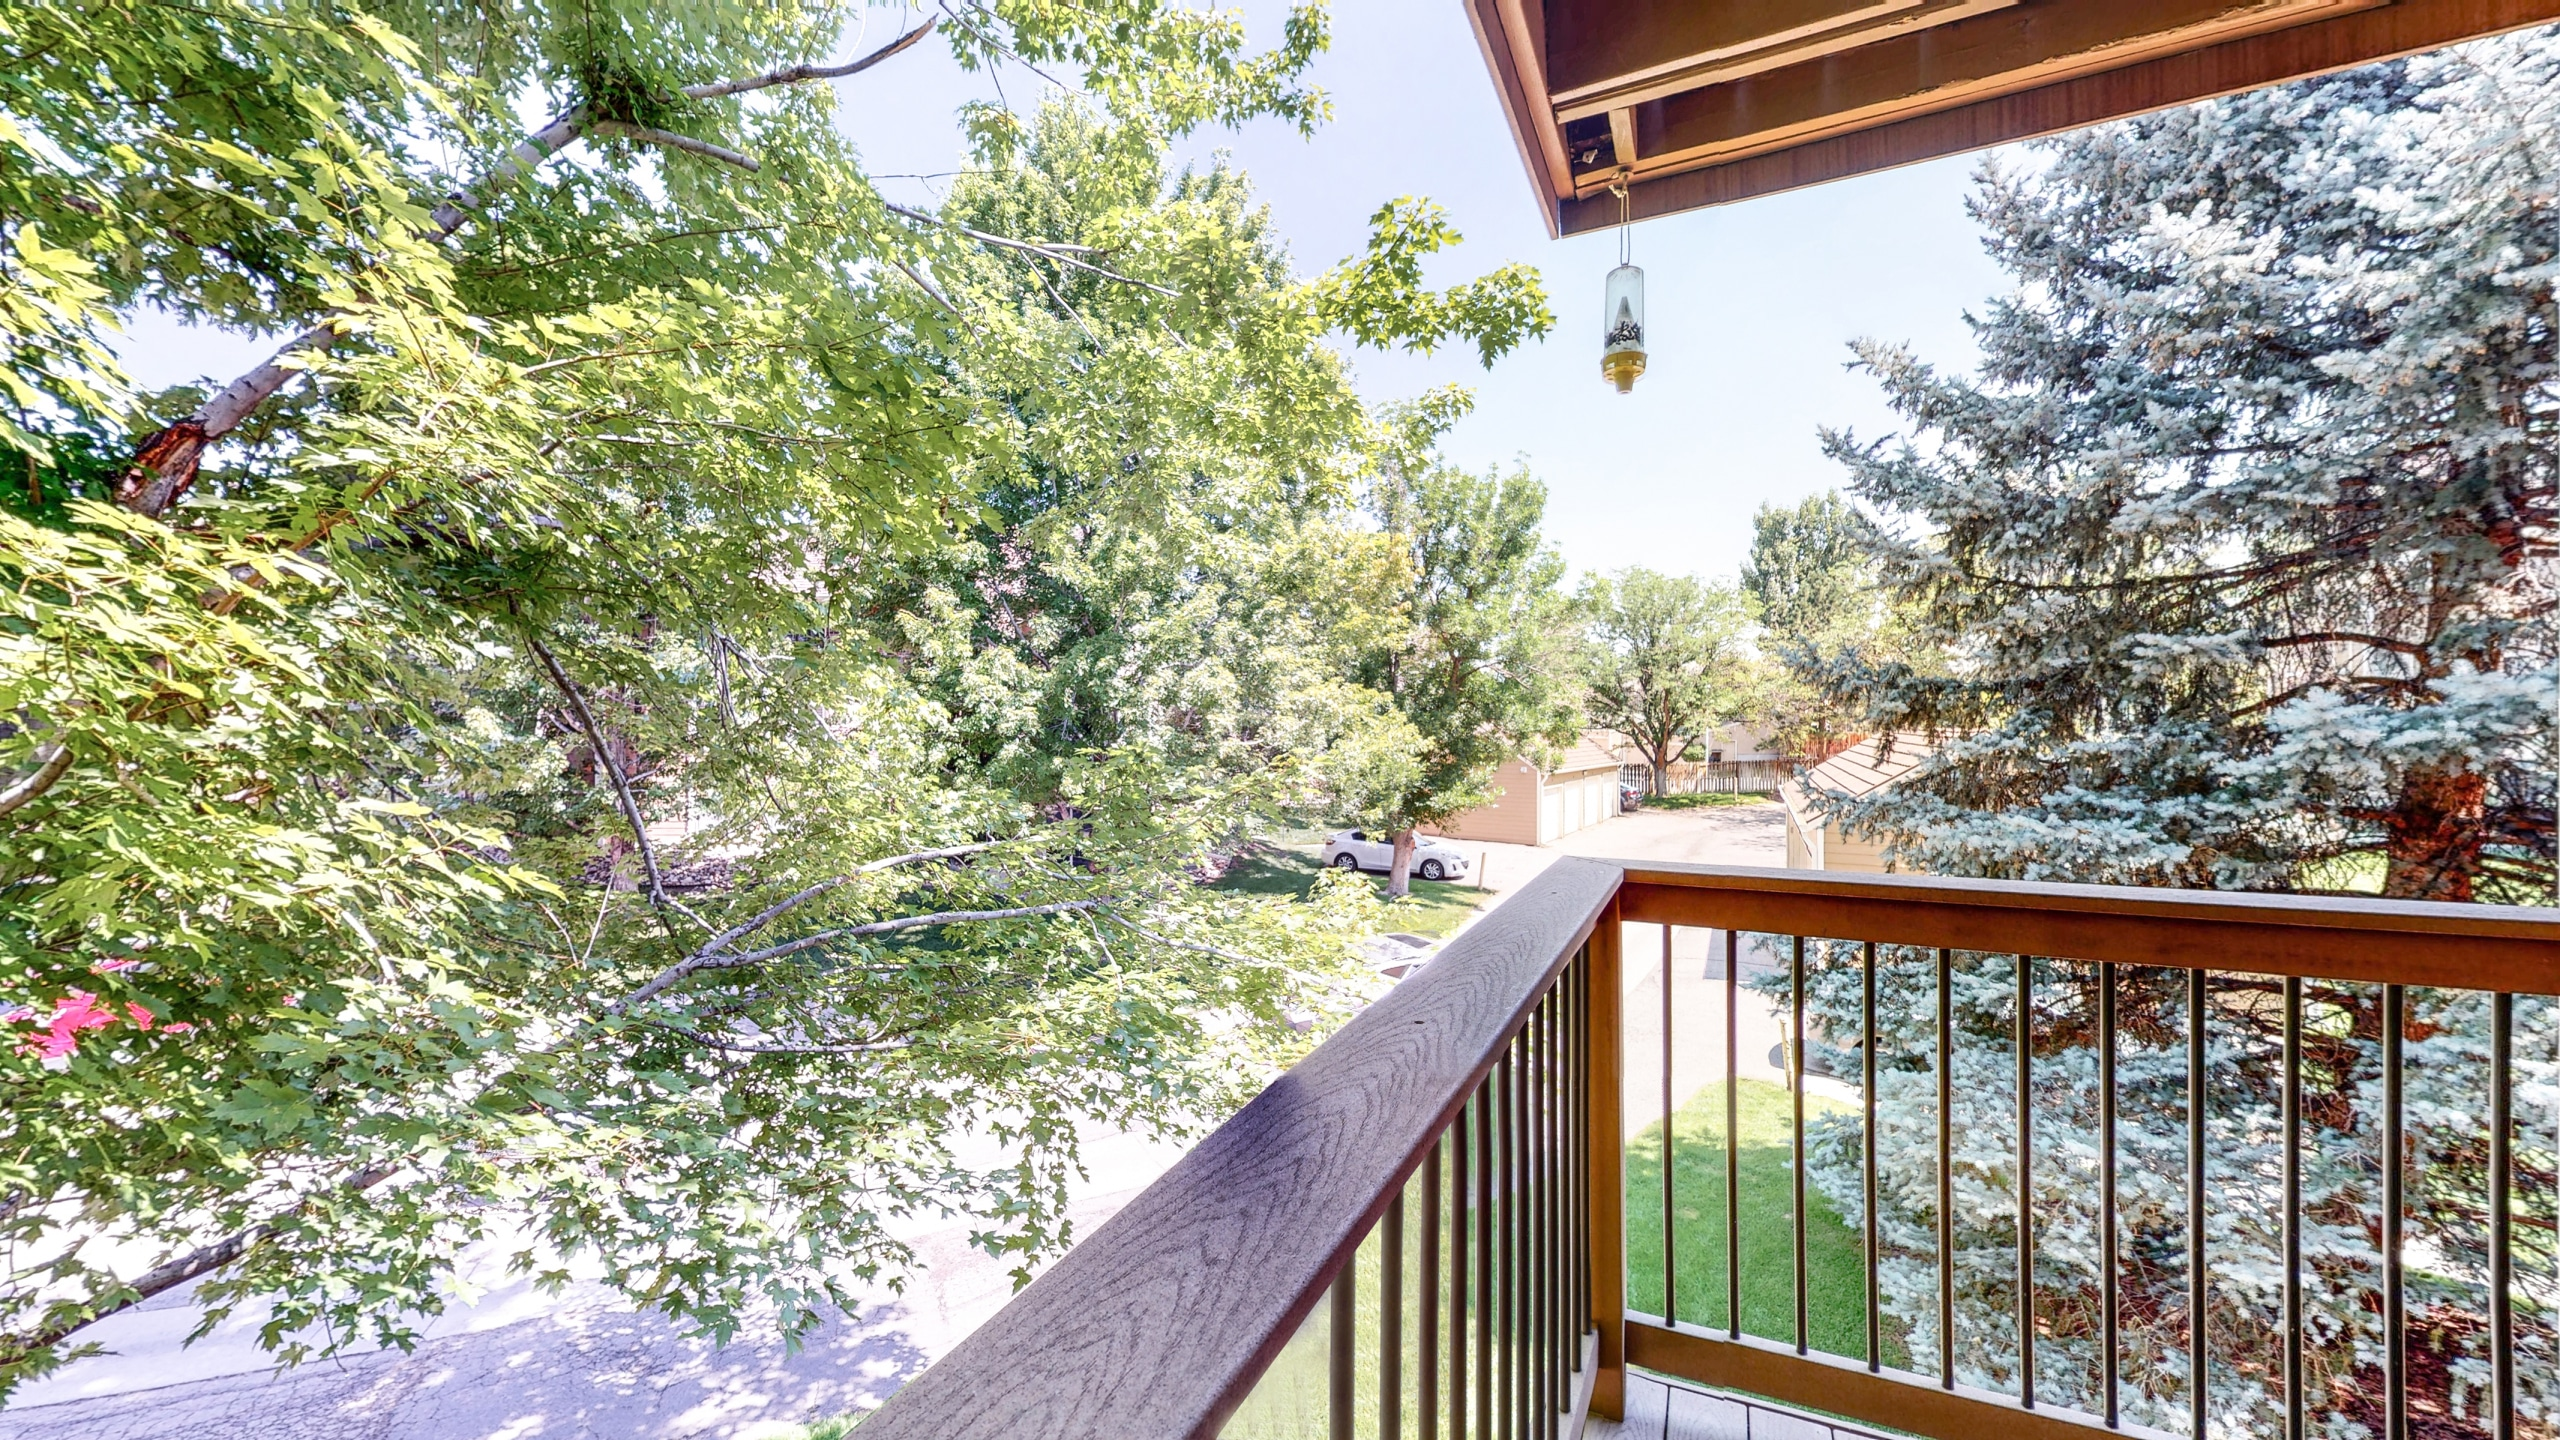 Private Balcony is very private with large trees